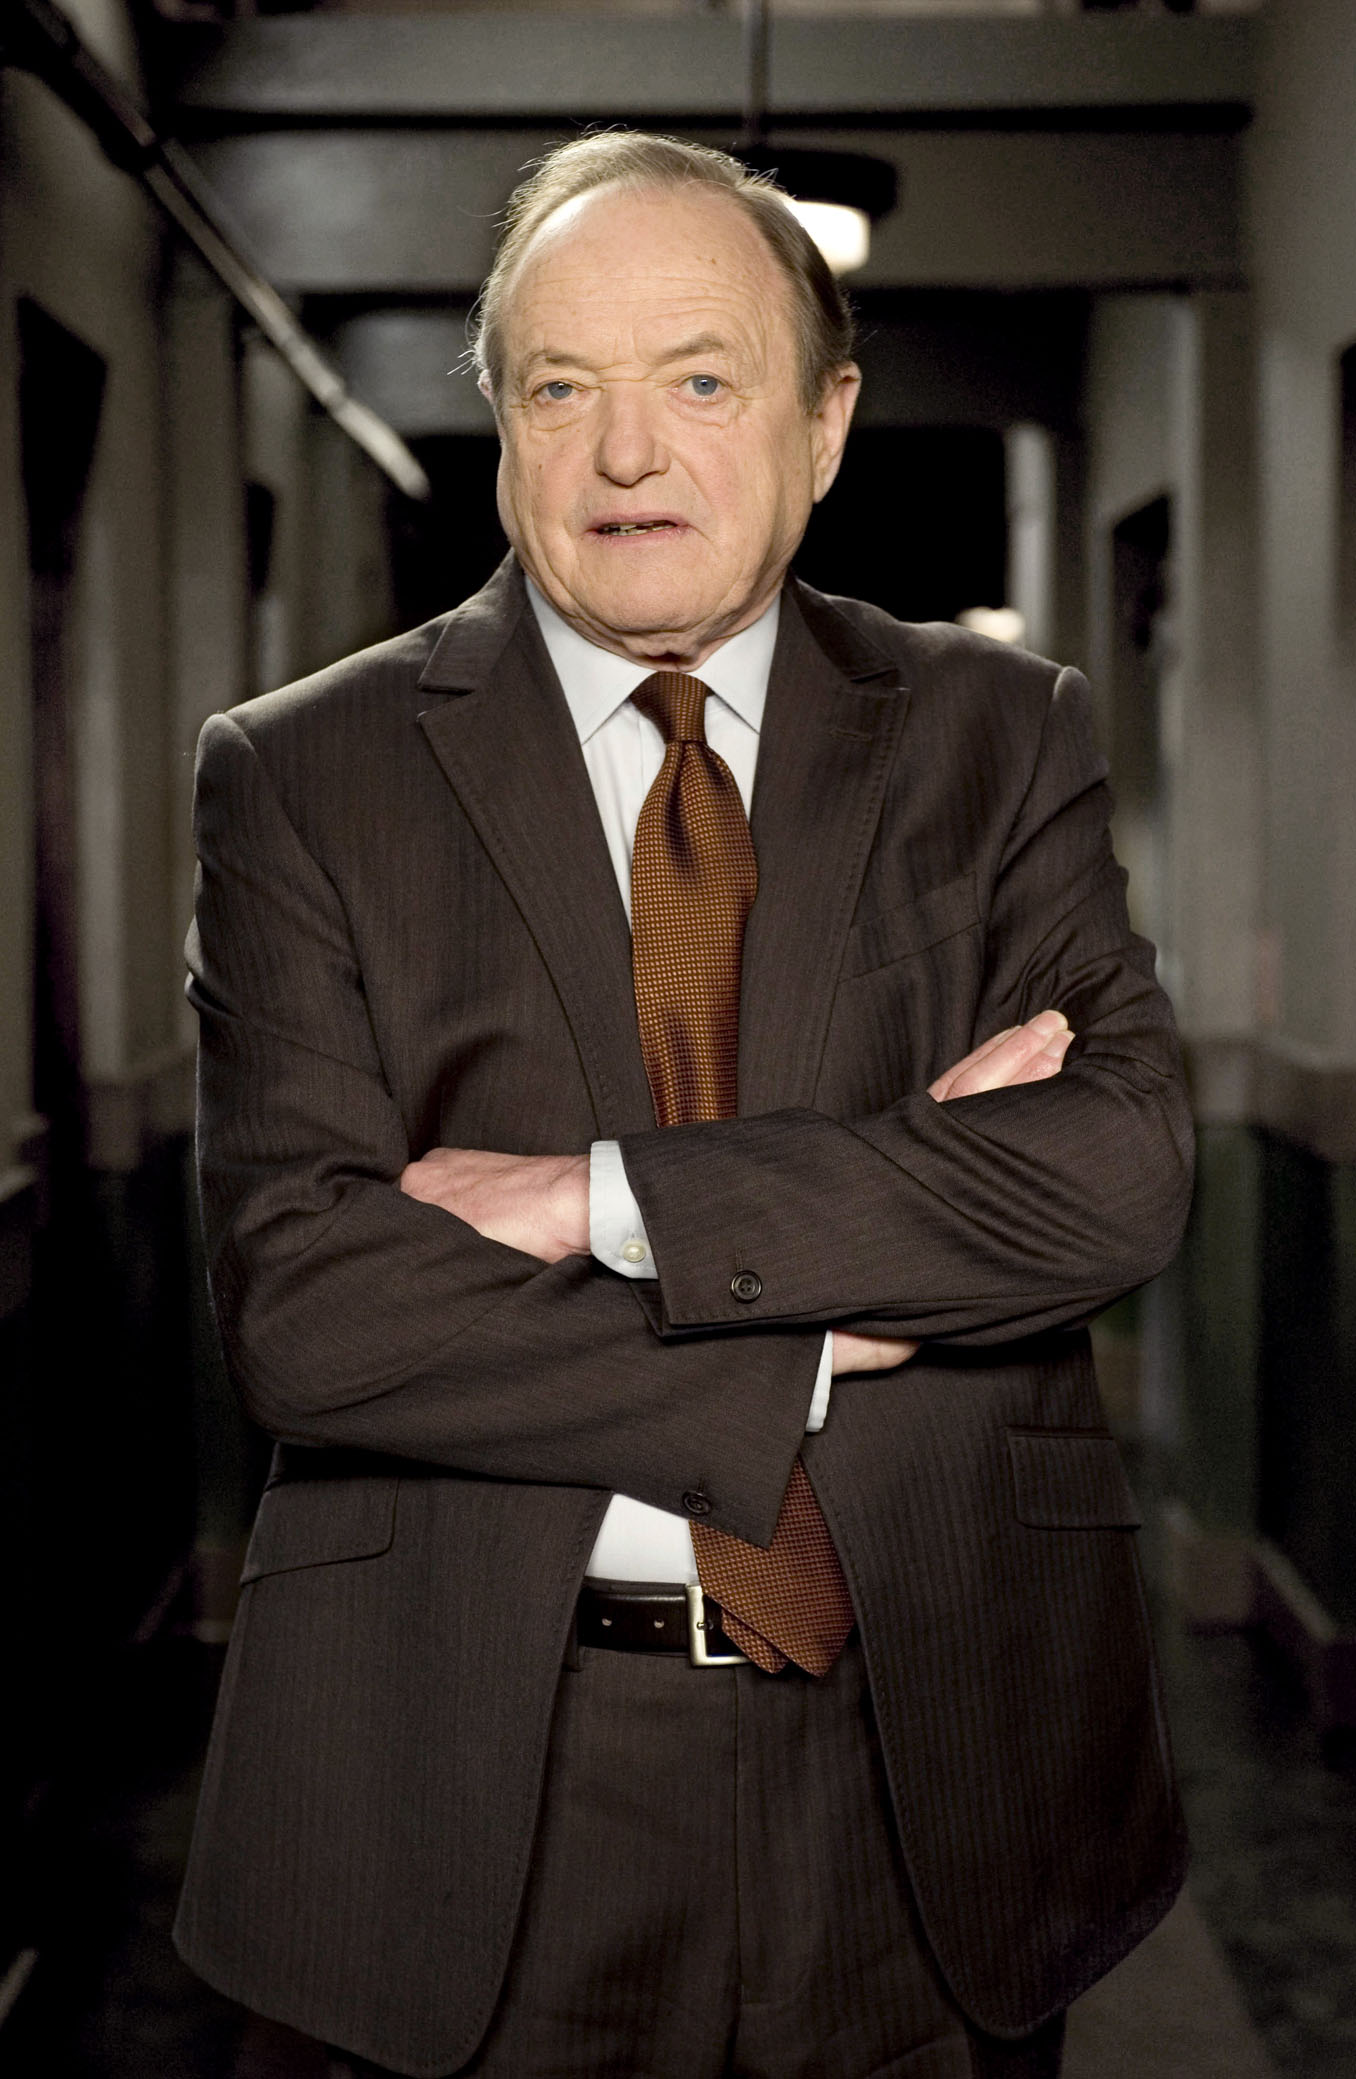 New Tricks Youtube: New Tricks Star James Bolam Opens Up...